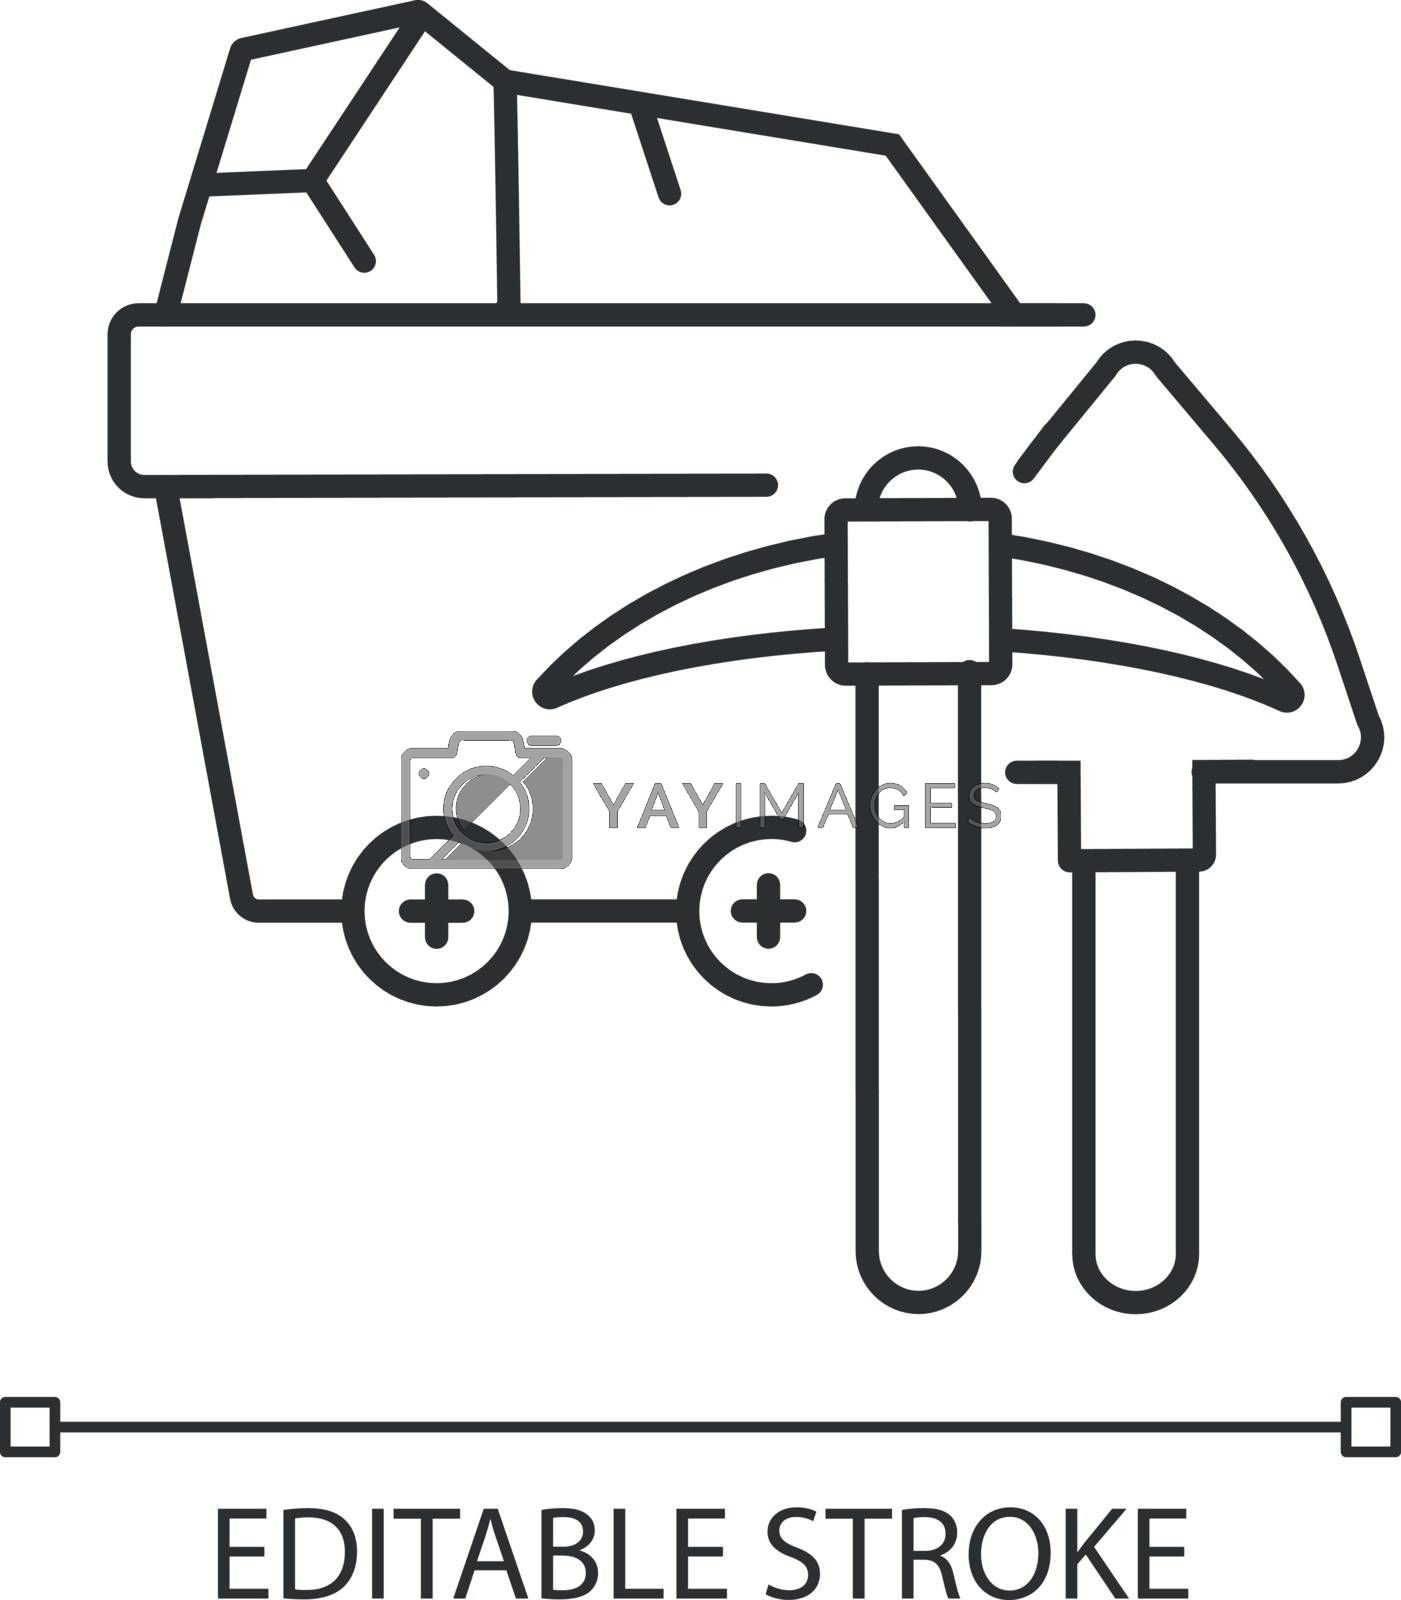 Coal industry linear icon. Natural resources exploitation, fossil fuel mining thin line customizable illustration. Contour symbol. Colliery equipment. Vector isolated outline drawing. Editable stroke